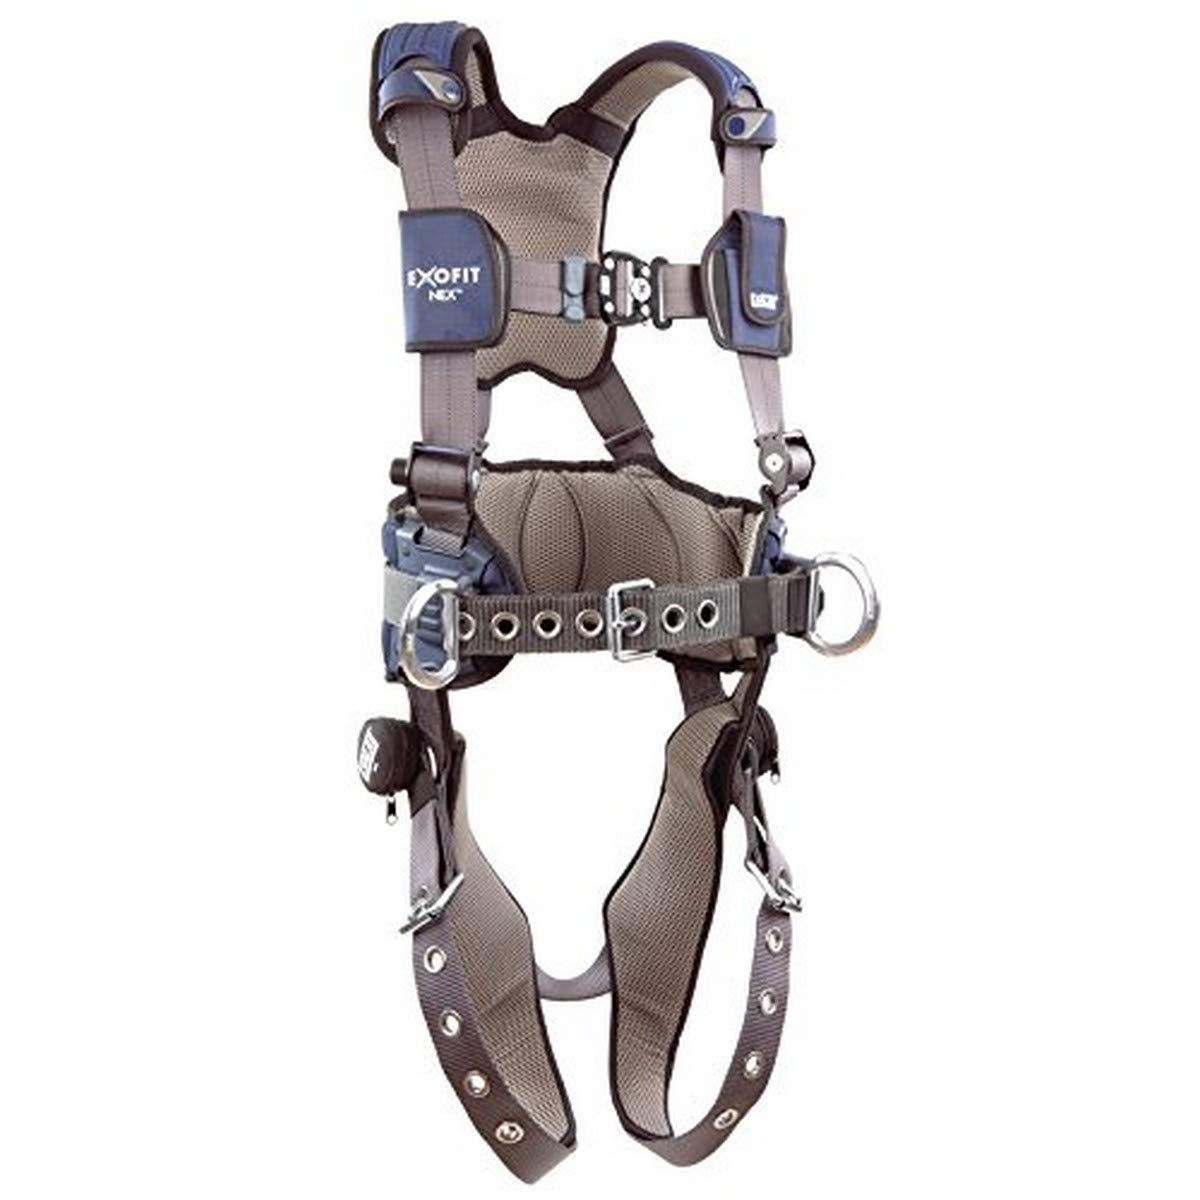 3M DBI-SALA 1113139 ExoFit NEX Construction Harness with Back D-Ring Tongue Buckle Body Belt /& Hip Pad with Side D-Rings Tongue Buckle Leg Straps Medium